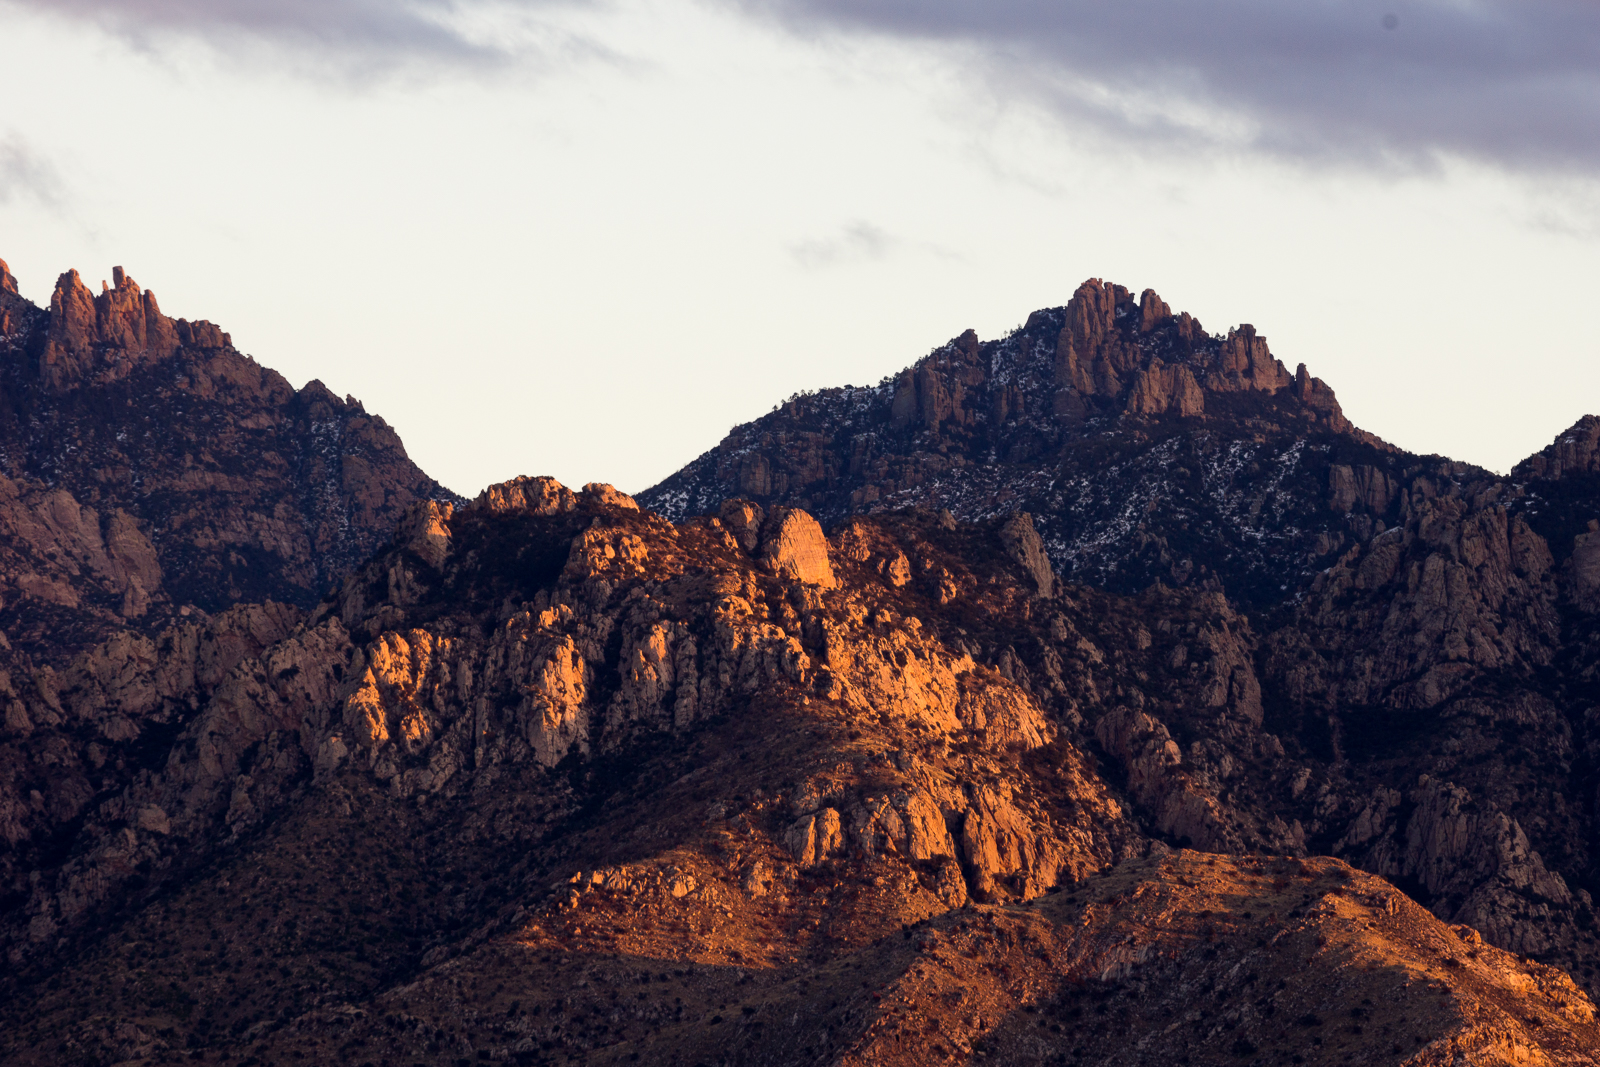 Sunset light on the west side of the Santa Catalina Mountains. December 2015.